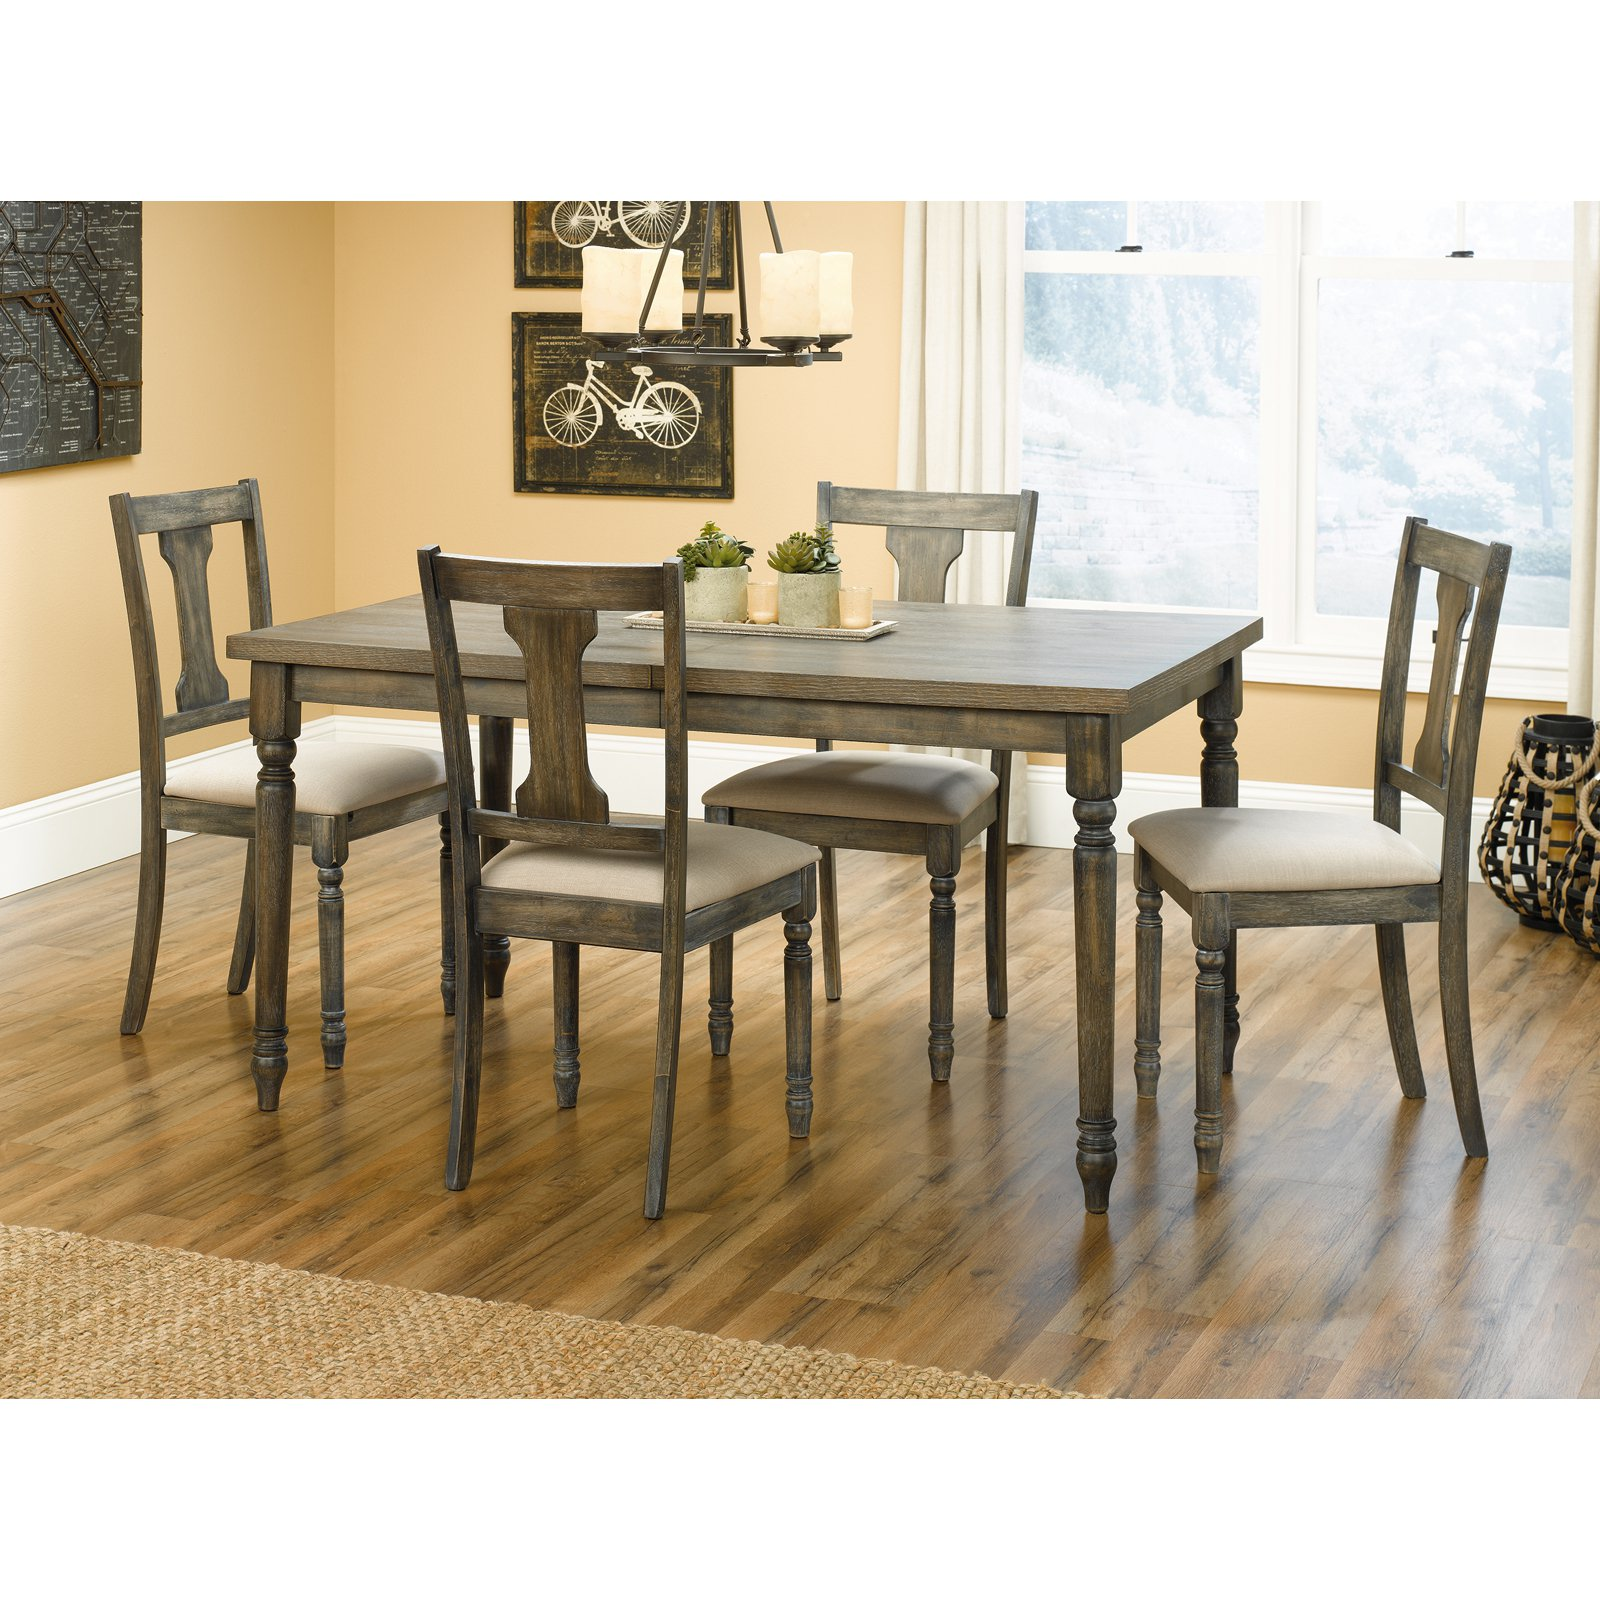 Marvelous Sauder Barrister Lane 5 Piece Dining Table Set   Walmart.com